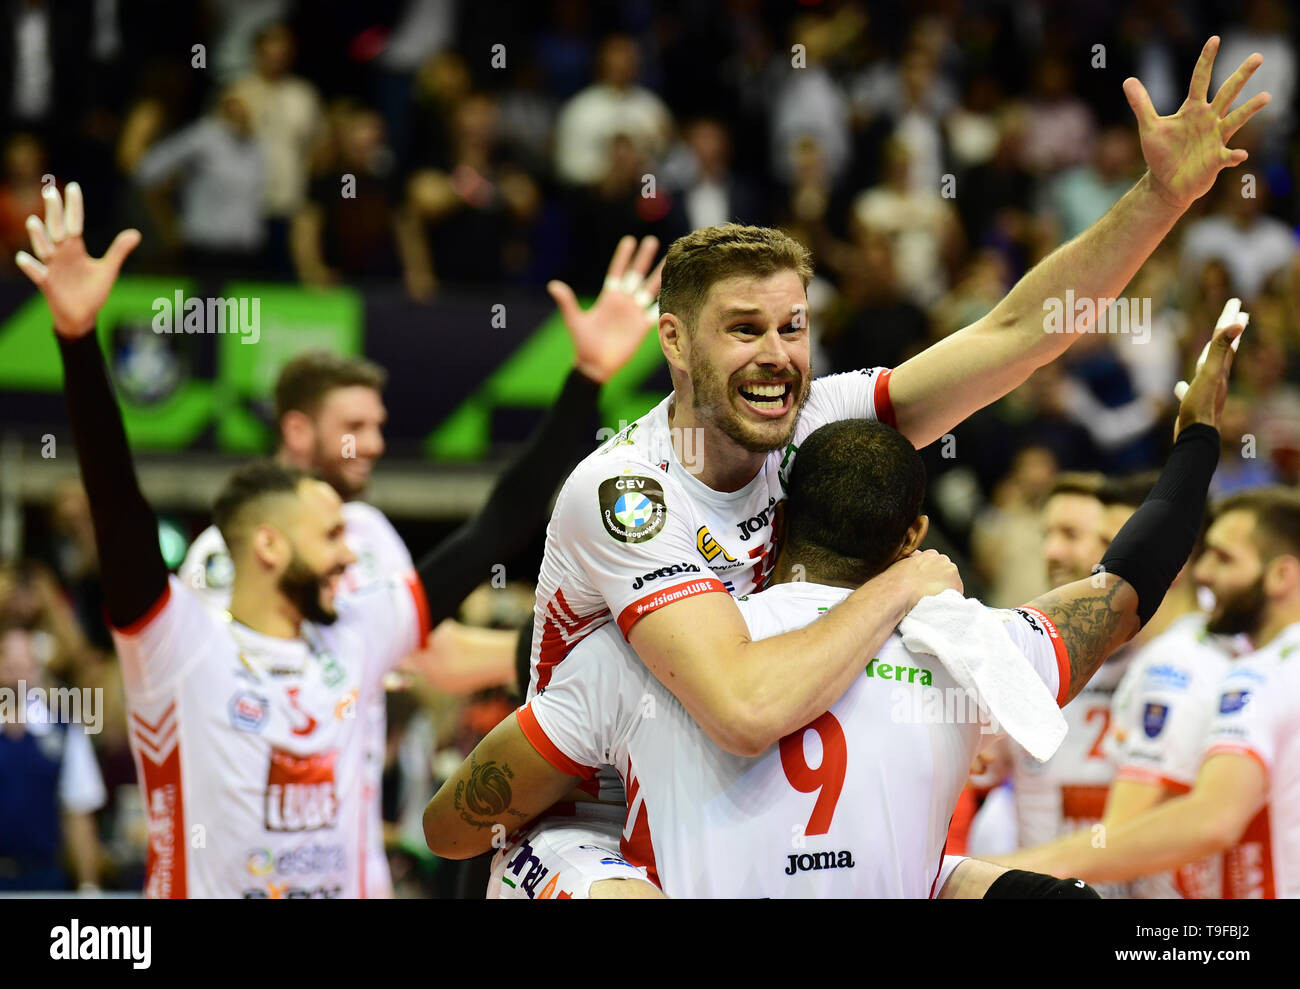 Berlin, Germany. 18th May, 2019. Volleyball, Men: Champions League, Zenit Kazan - Cucine Lube Civitanova, knockout round, final. Bruno Mossa de Rezende of Civitanova and his teammates cheer after a 3-1 win. Credit: Soeren Stache/dpa/Alamy Live News Stock Photo